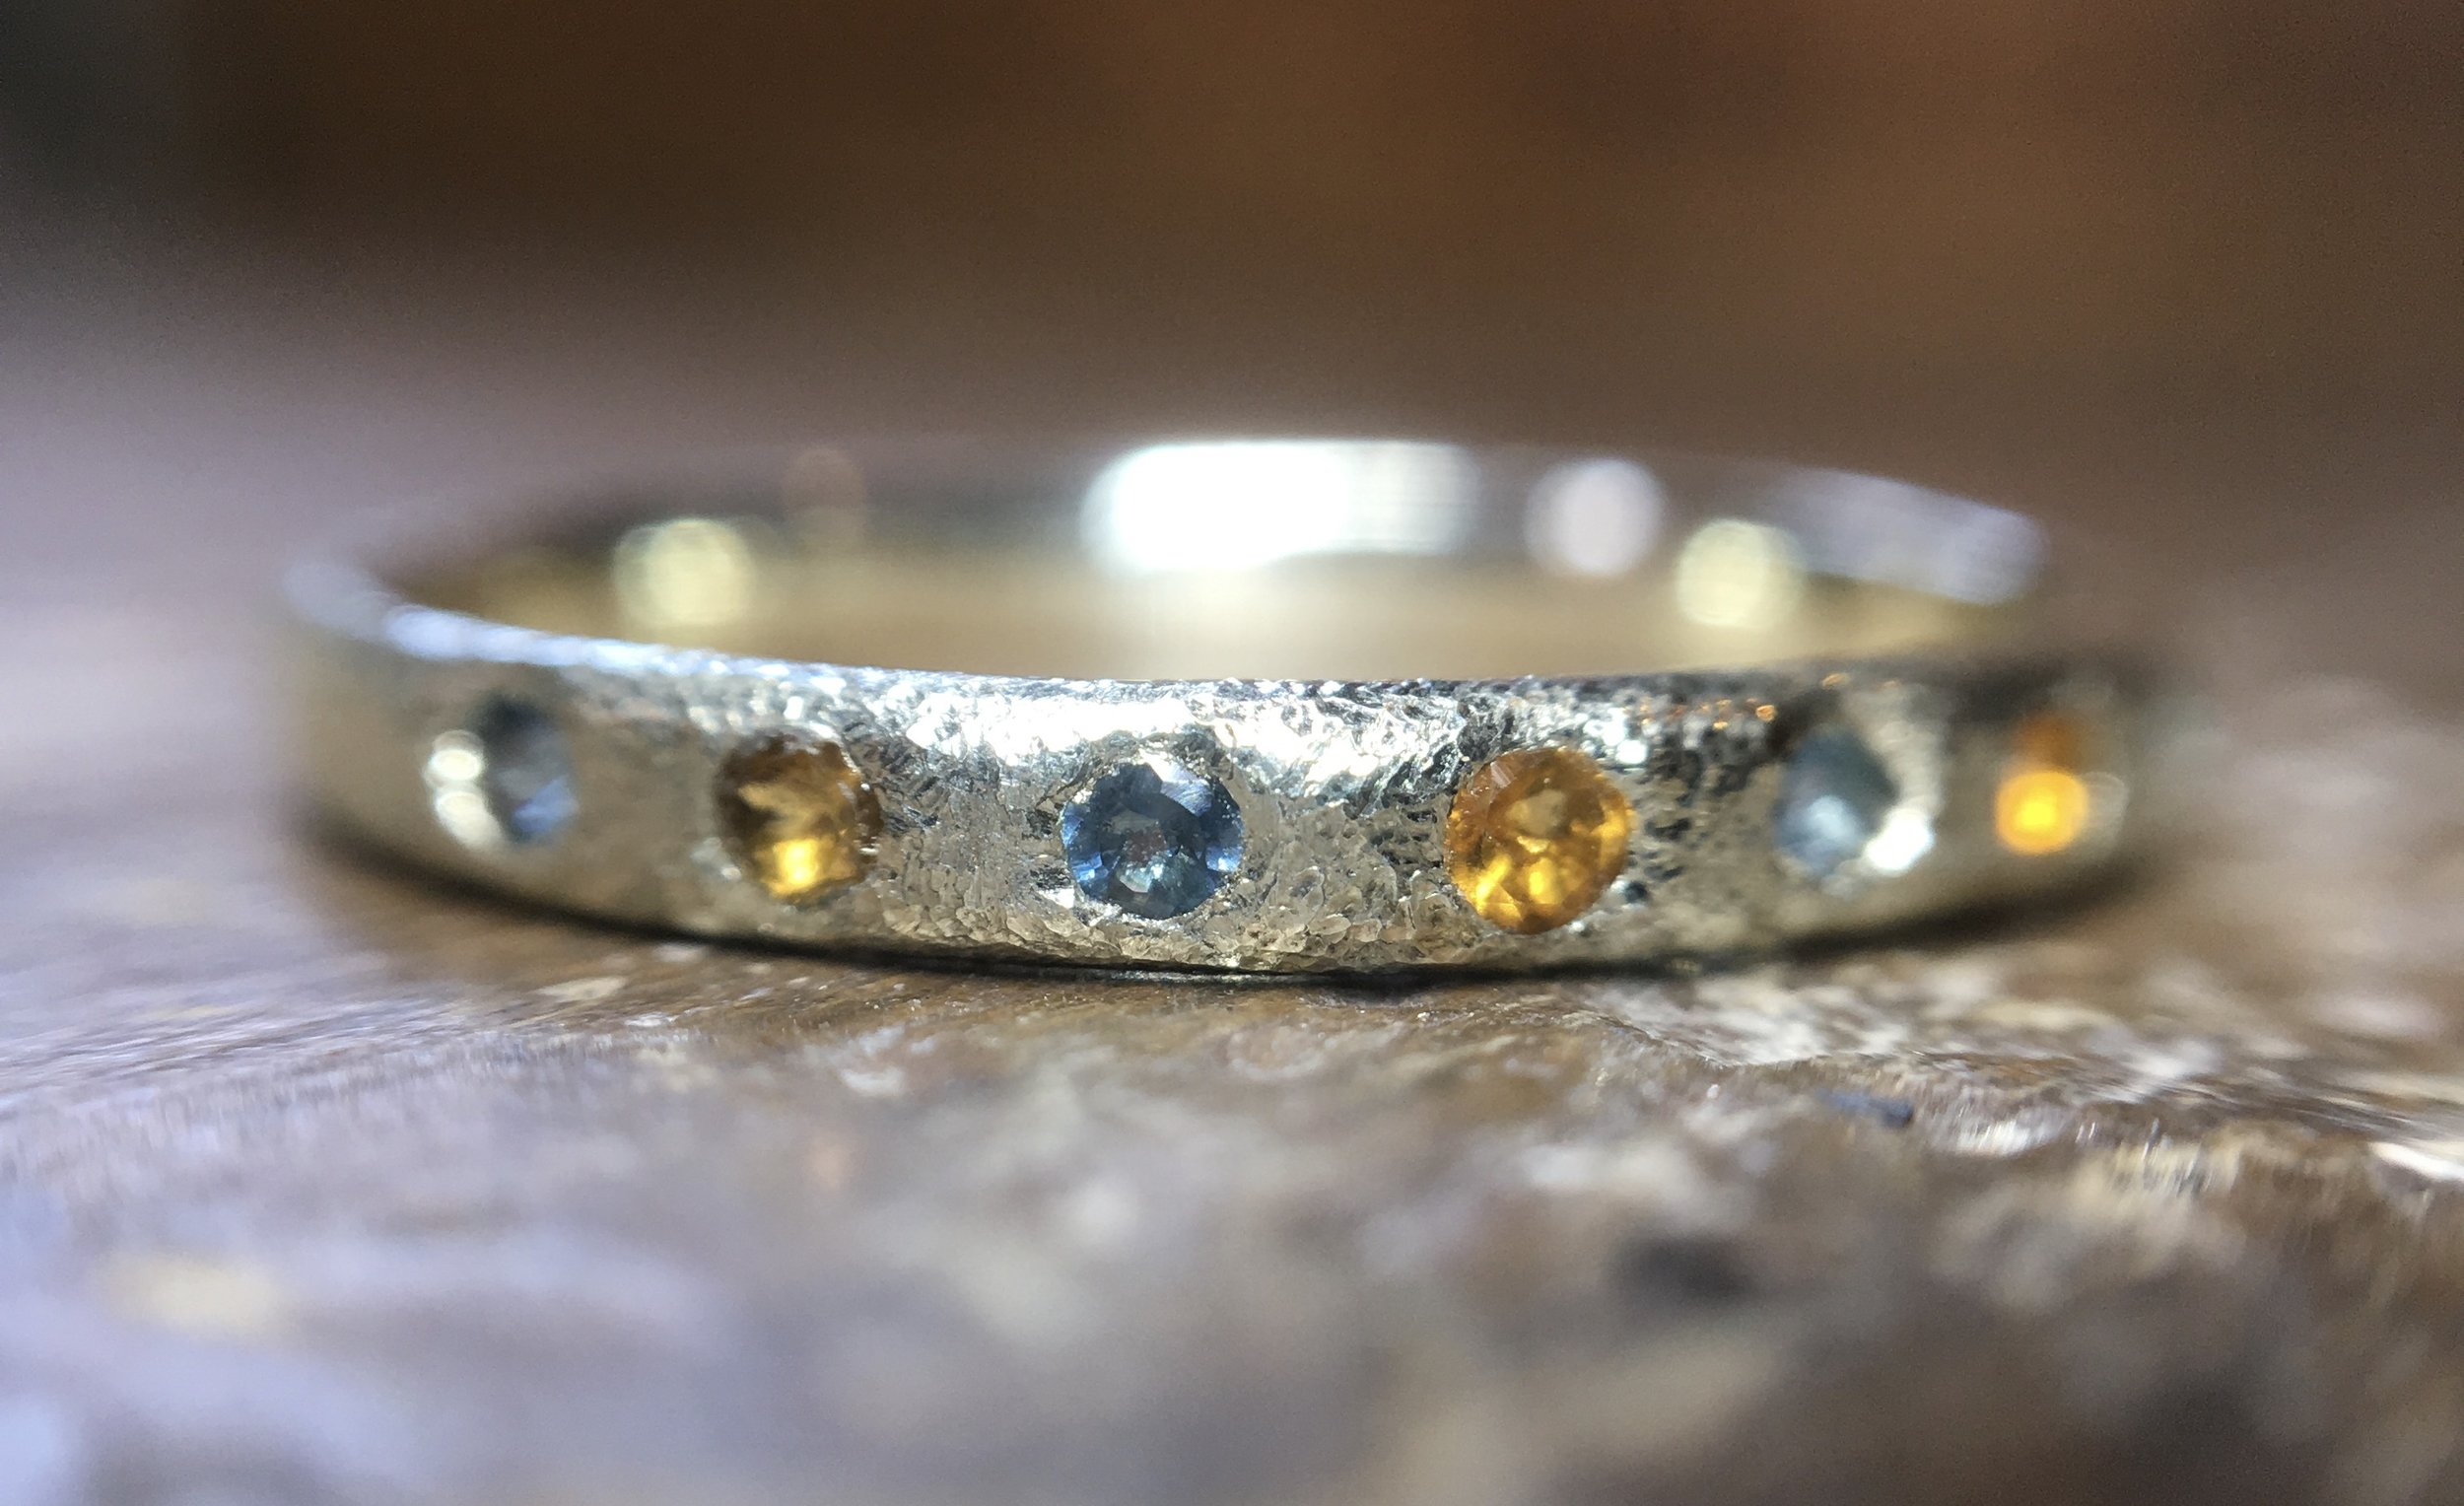 9ct white gold remodelled ring